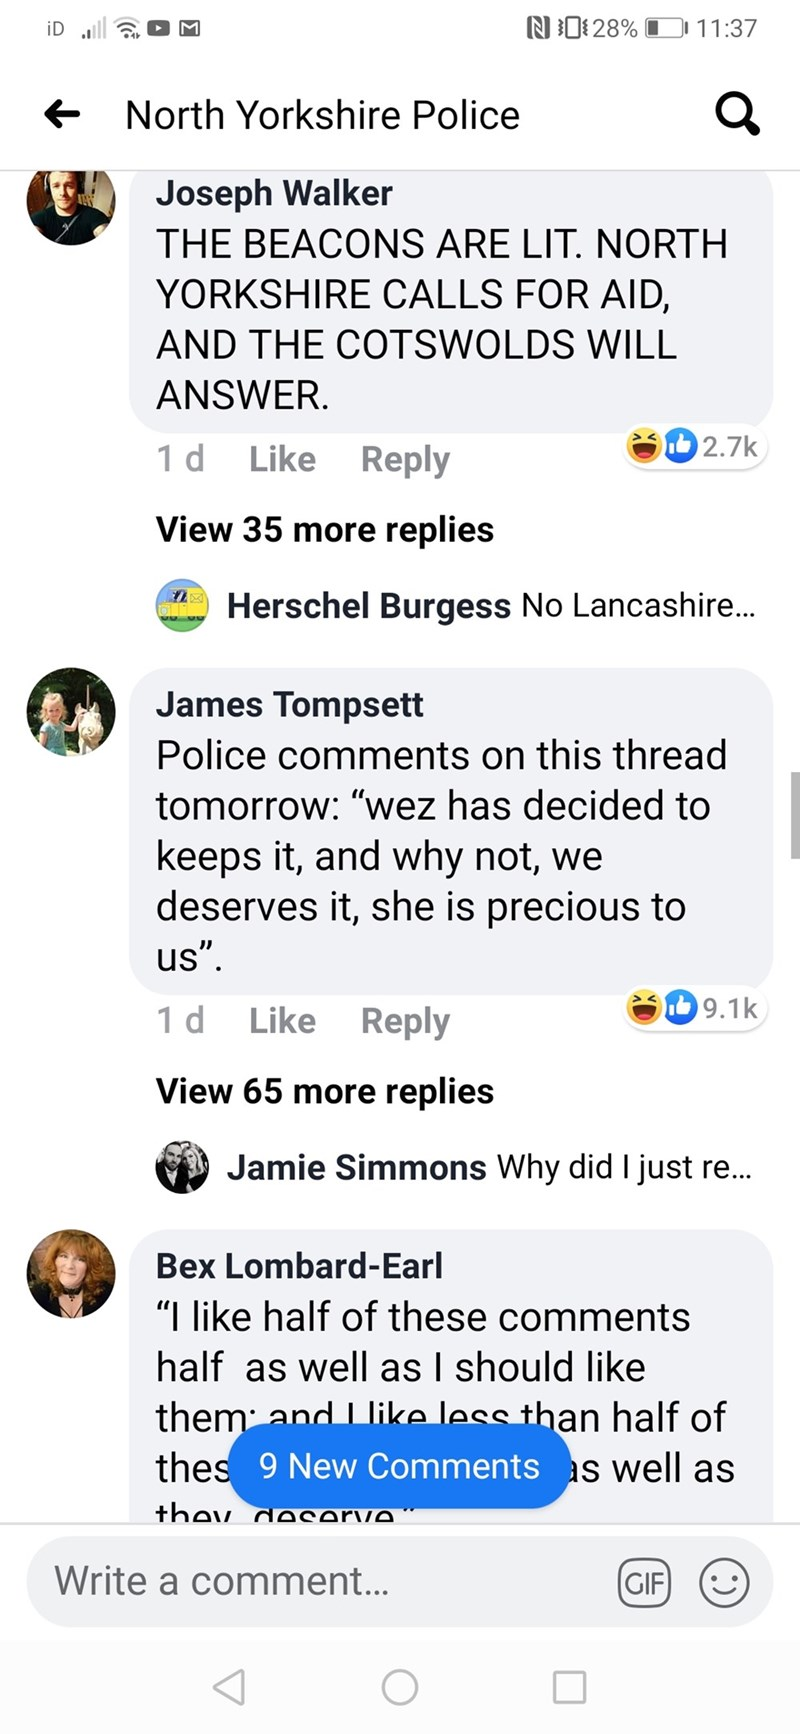 """Text - N1: 28% O 11:37 iD ull + North Yorkshire Police Joseph Walker THE BEACONS ARE LIT. NORTH YORKSHIRE CALLS FOR AID, AND THE COTSWOLDS WILL ANSWER. 2.7k Like Reply 1 d View 35 more replies A Herschel Burgess No Lancashire... James Tompsett Police comments on this thread tomorrow: """"wez has decided to keeps it, and why not, we deserves it, she is precious to us"""". b 9.1k Like Reply 1 d View 65 more replies Jamie Simmons Why did I just re... Bex Lombard-Earl """"I like half of these comments half a"""